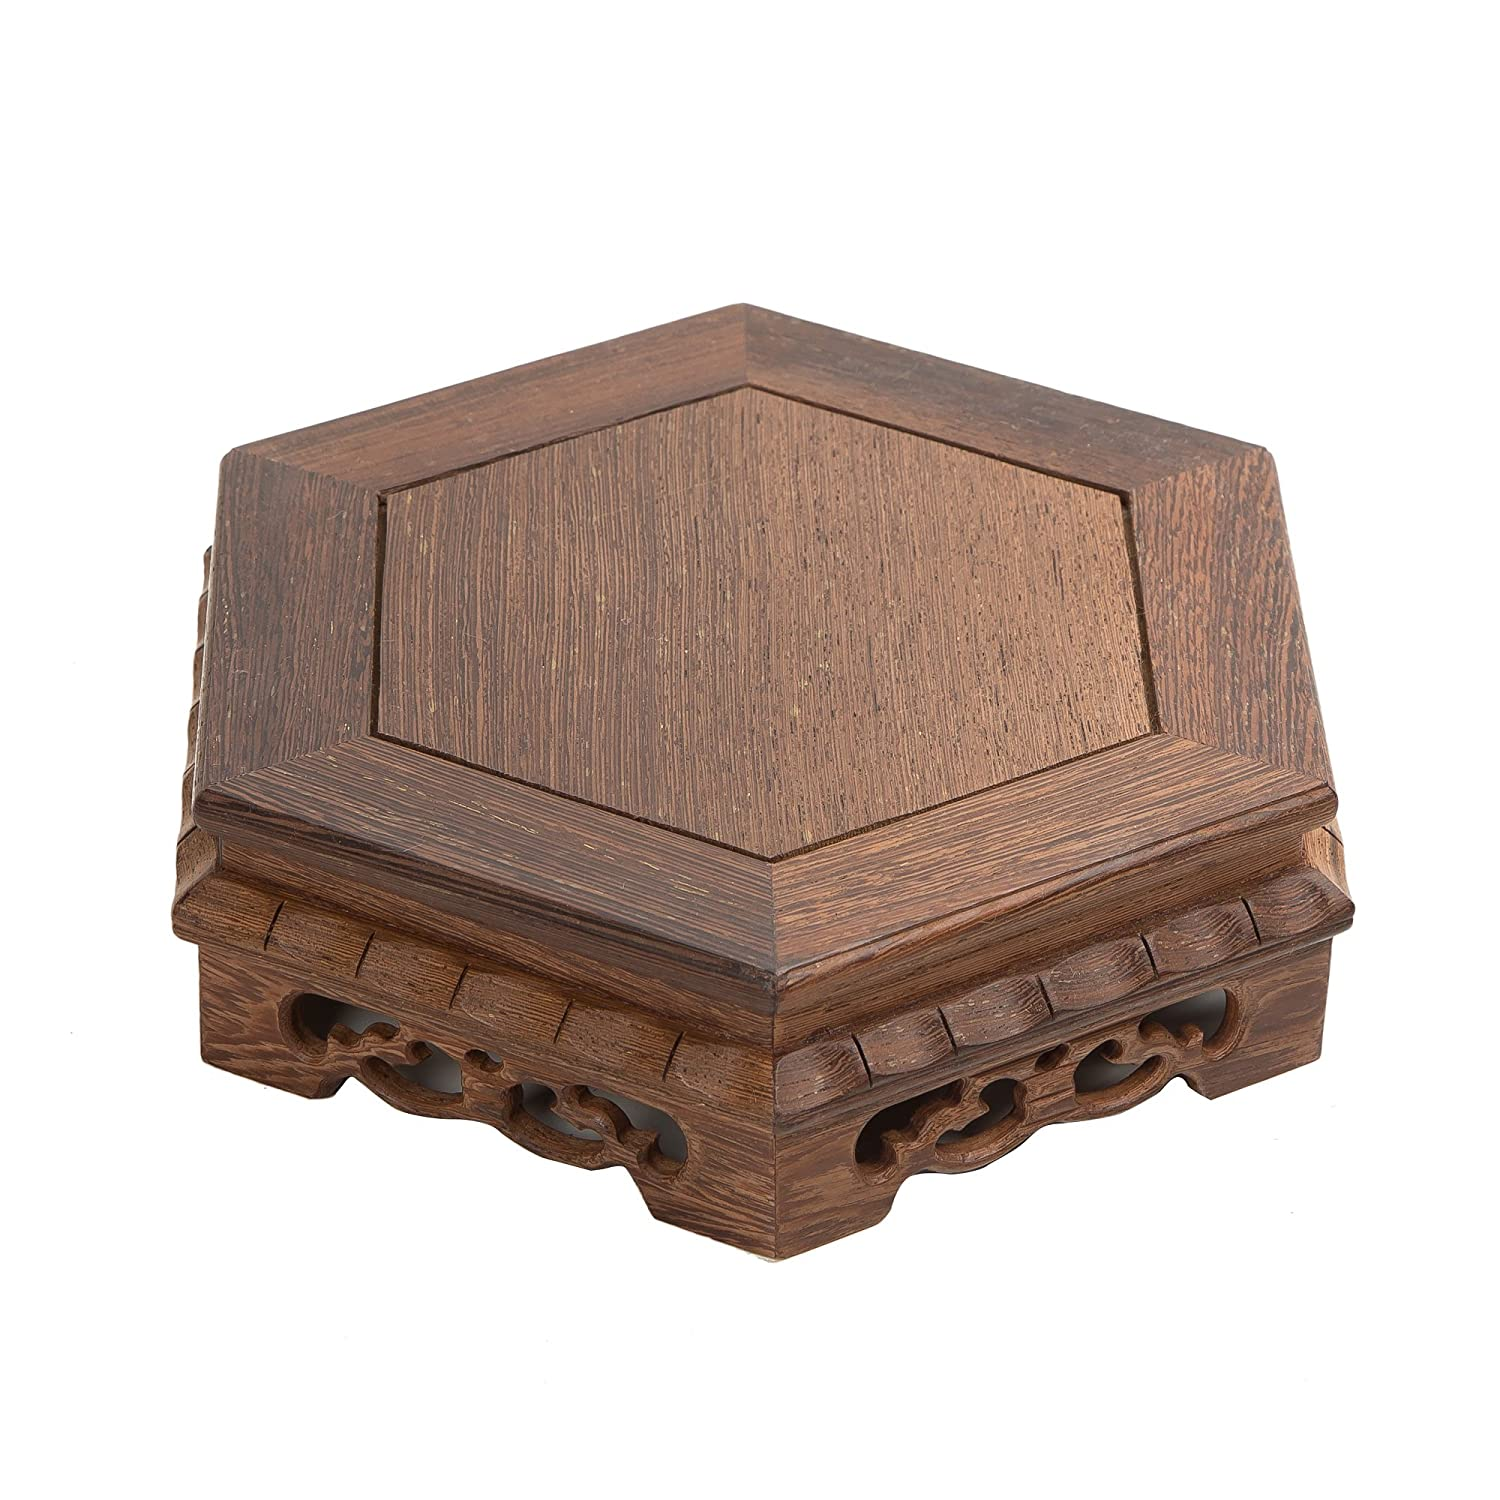 Oriental Furniture Chinese Rosewood Display Stands Pedestal Hexagon Shape Carved Solid Wood JiChi Wooden Base For Home Arts Antique Stone Display Decoration (S 12cm*12cm*5.5cm) shanghailuoluo